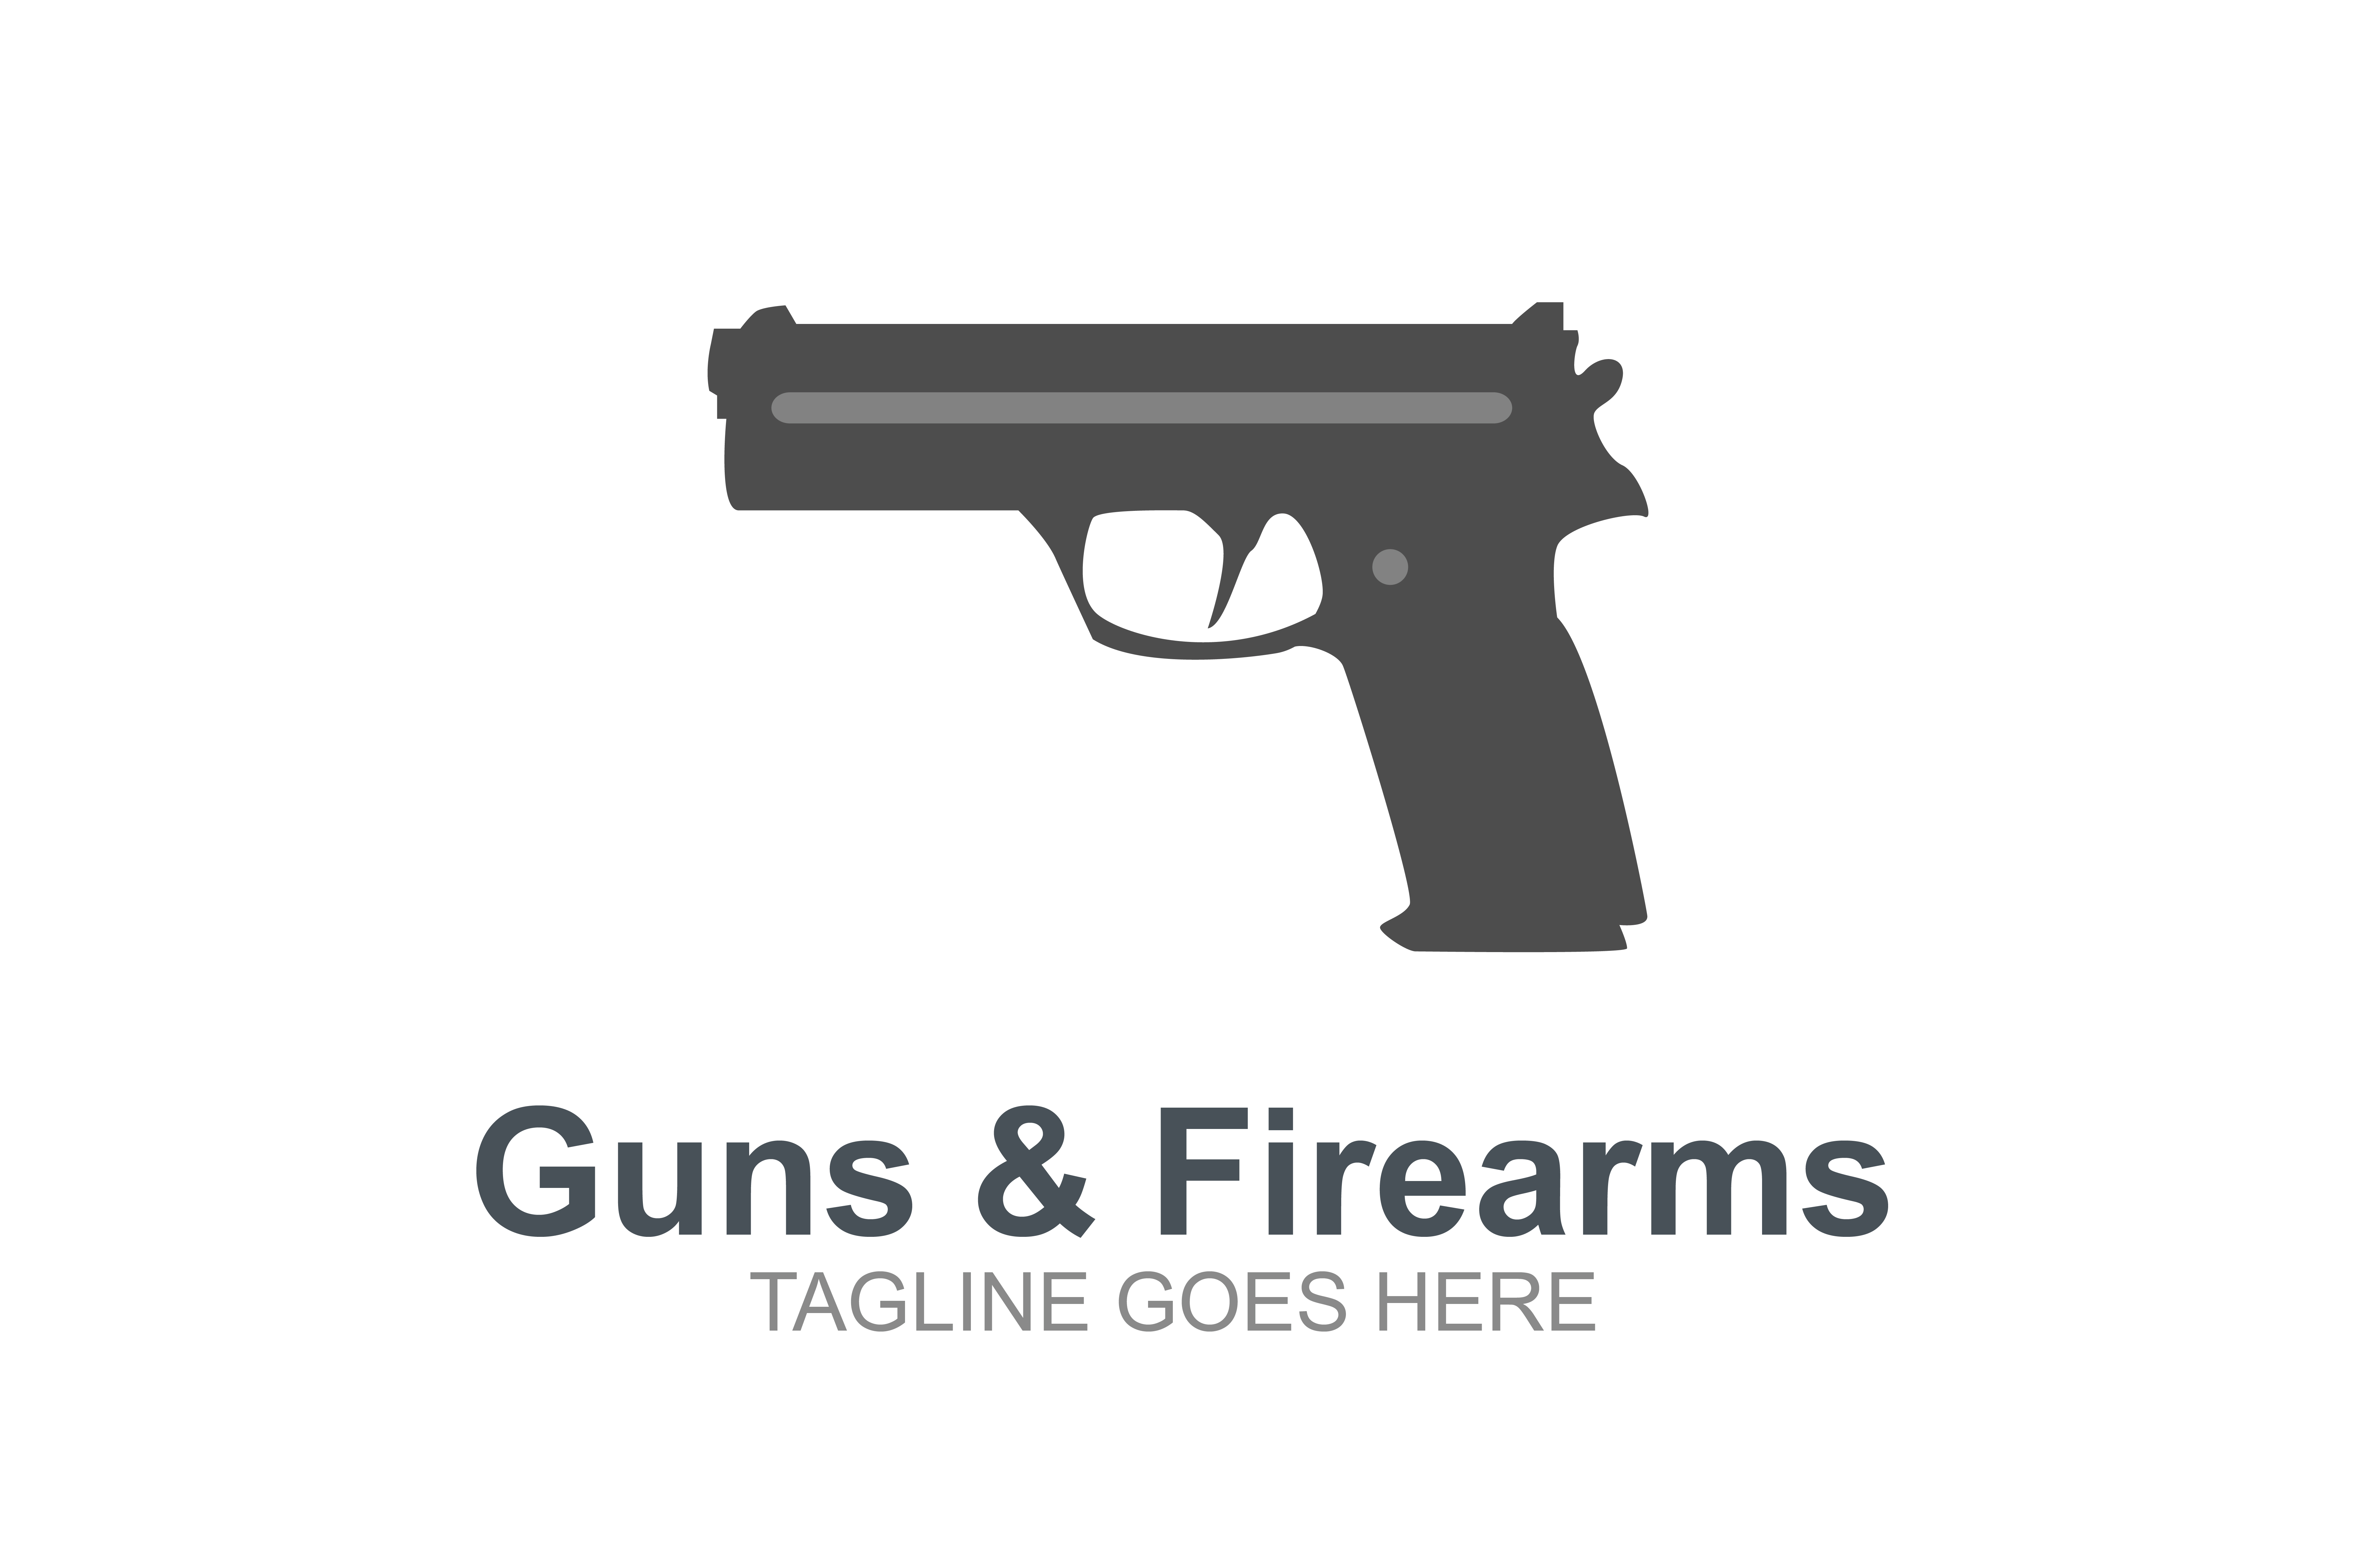 Download Free Guns And Firearms Logo Graphic By Guardesign Creative Fabrica for Cricut Explore, Silhouette and other cutting machines.